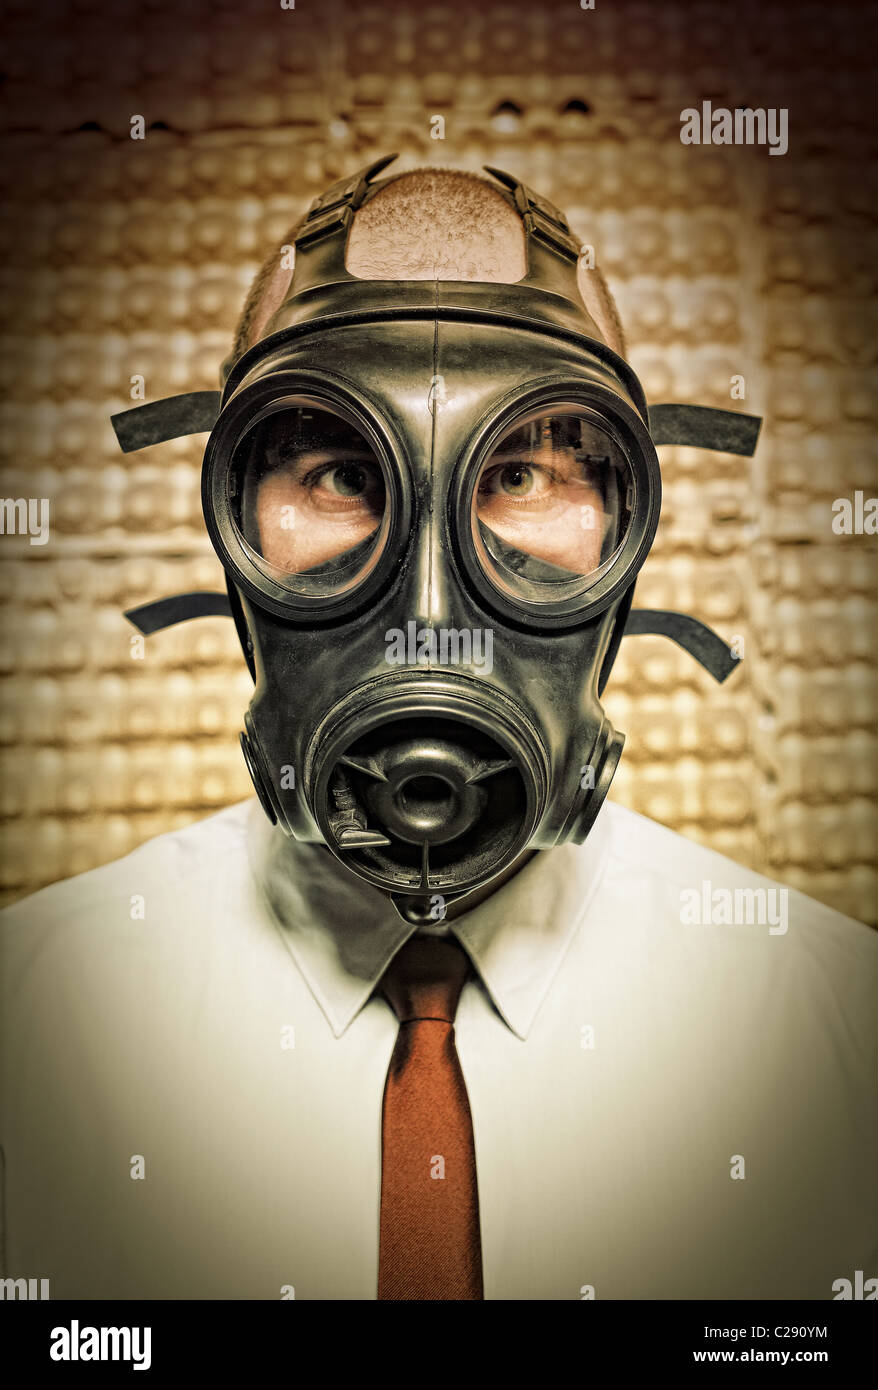 businessman with gas mask and grunge background - Stock Image